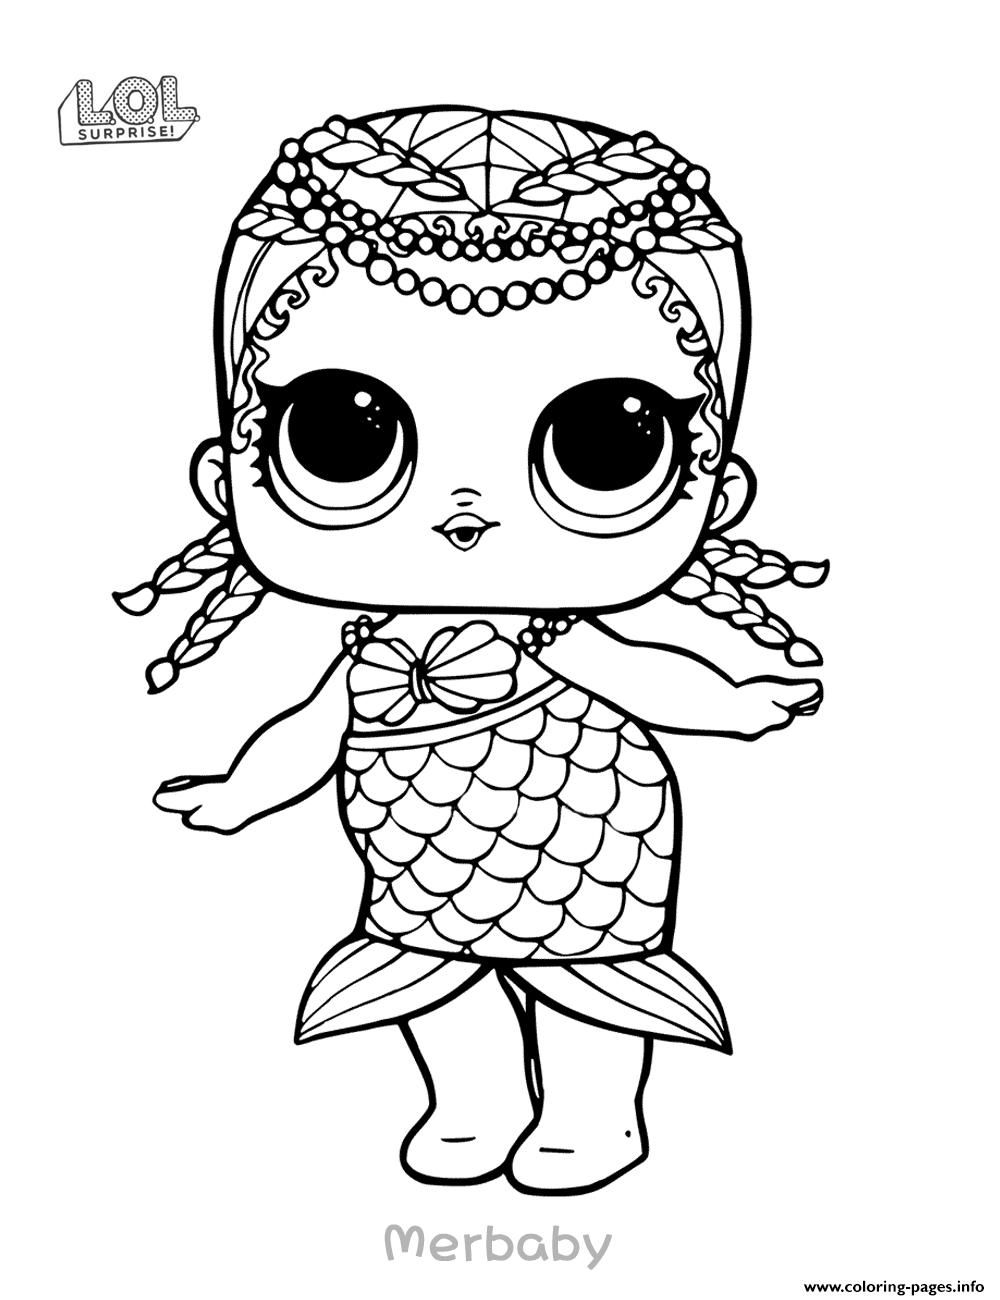 18 Coloring Page Lol Surprise Mermaid Coloring Pages Unicorn Coloring Pages Free Kids Coloring Pages